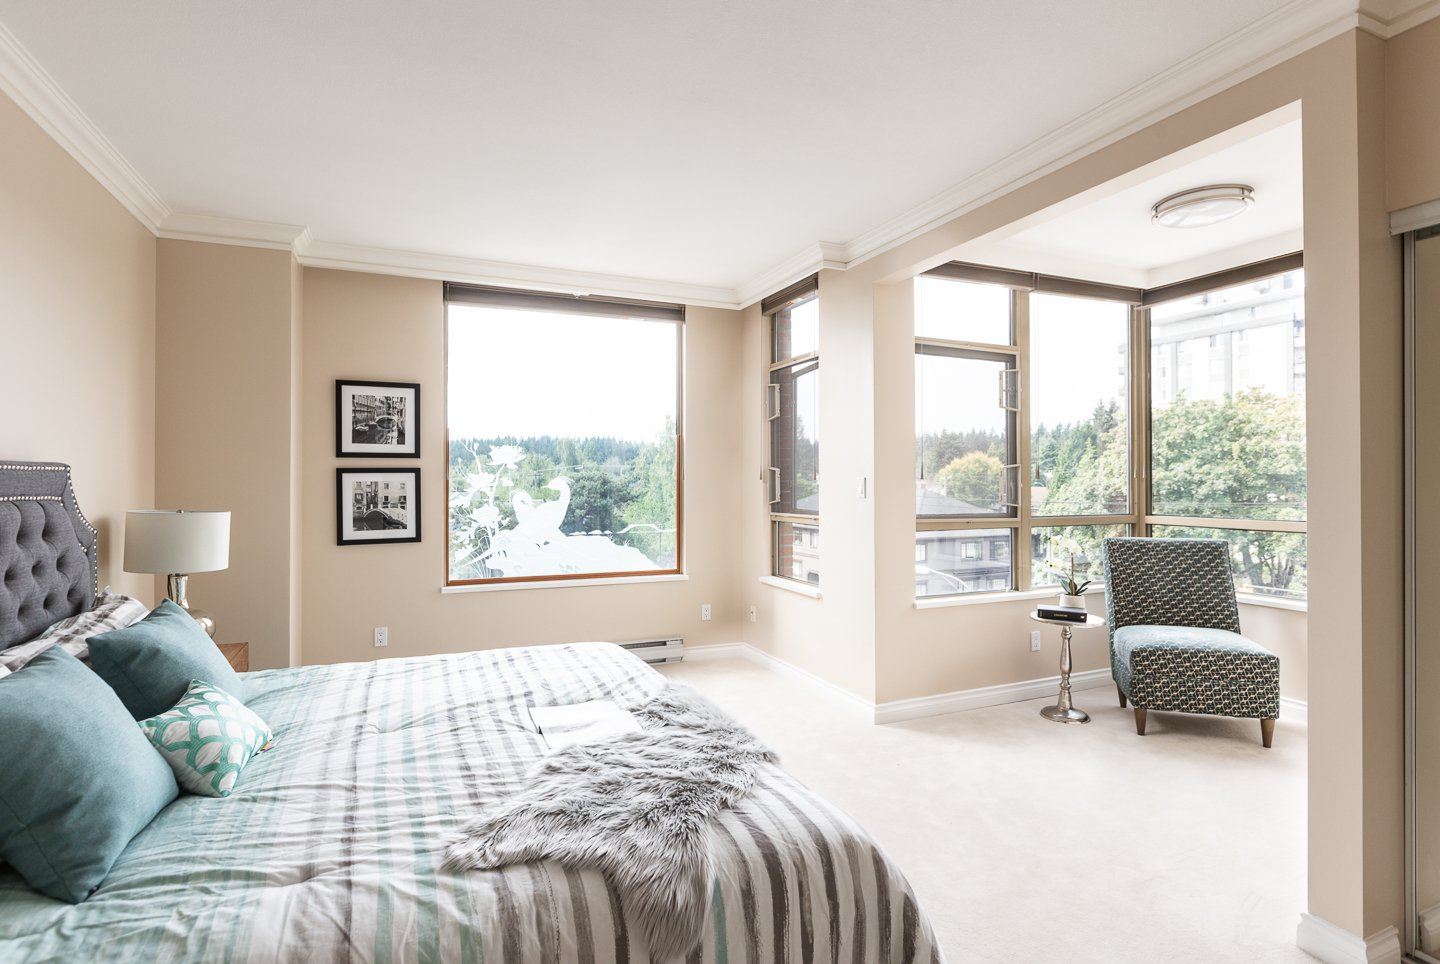 Photo 11: Photos: 401-2580 TOLMIE ST in VANCOUVER: Point Grey Condo for sale (Vancouver West)  : MLS®# R2397003